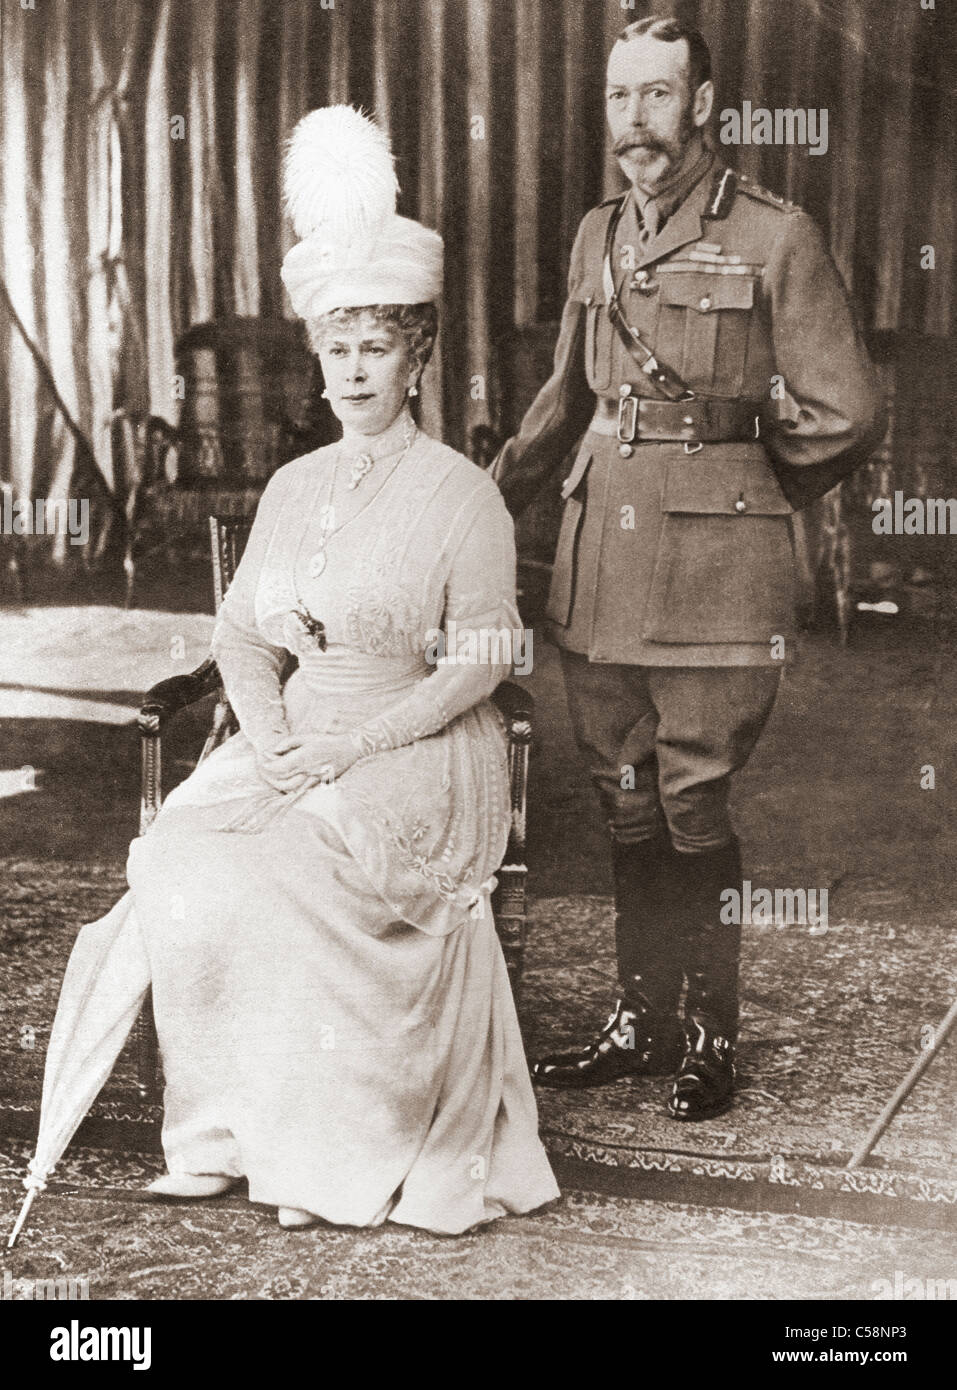 Silver Wedding portrait of King George V and Queen Mary in 1918. - Stock Image